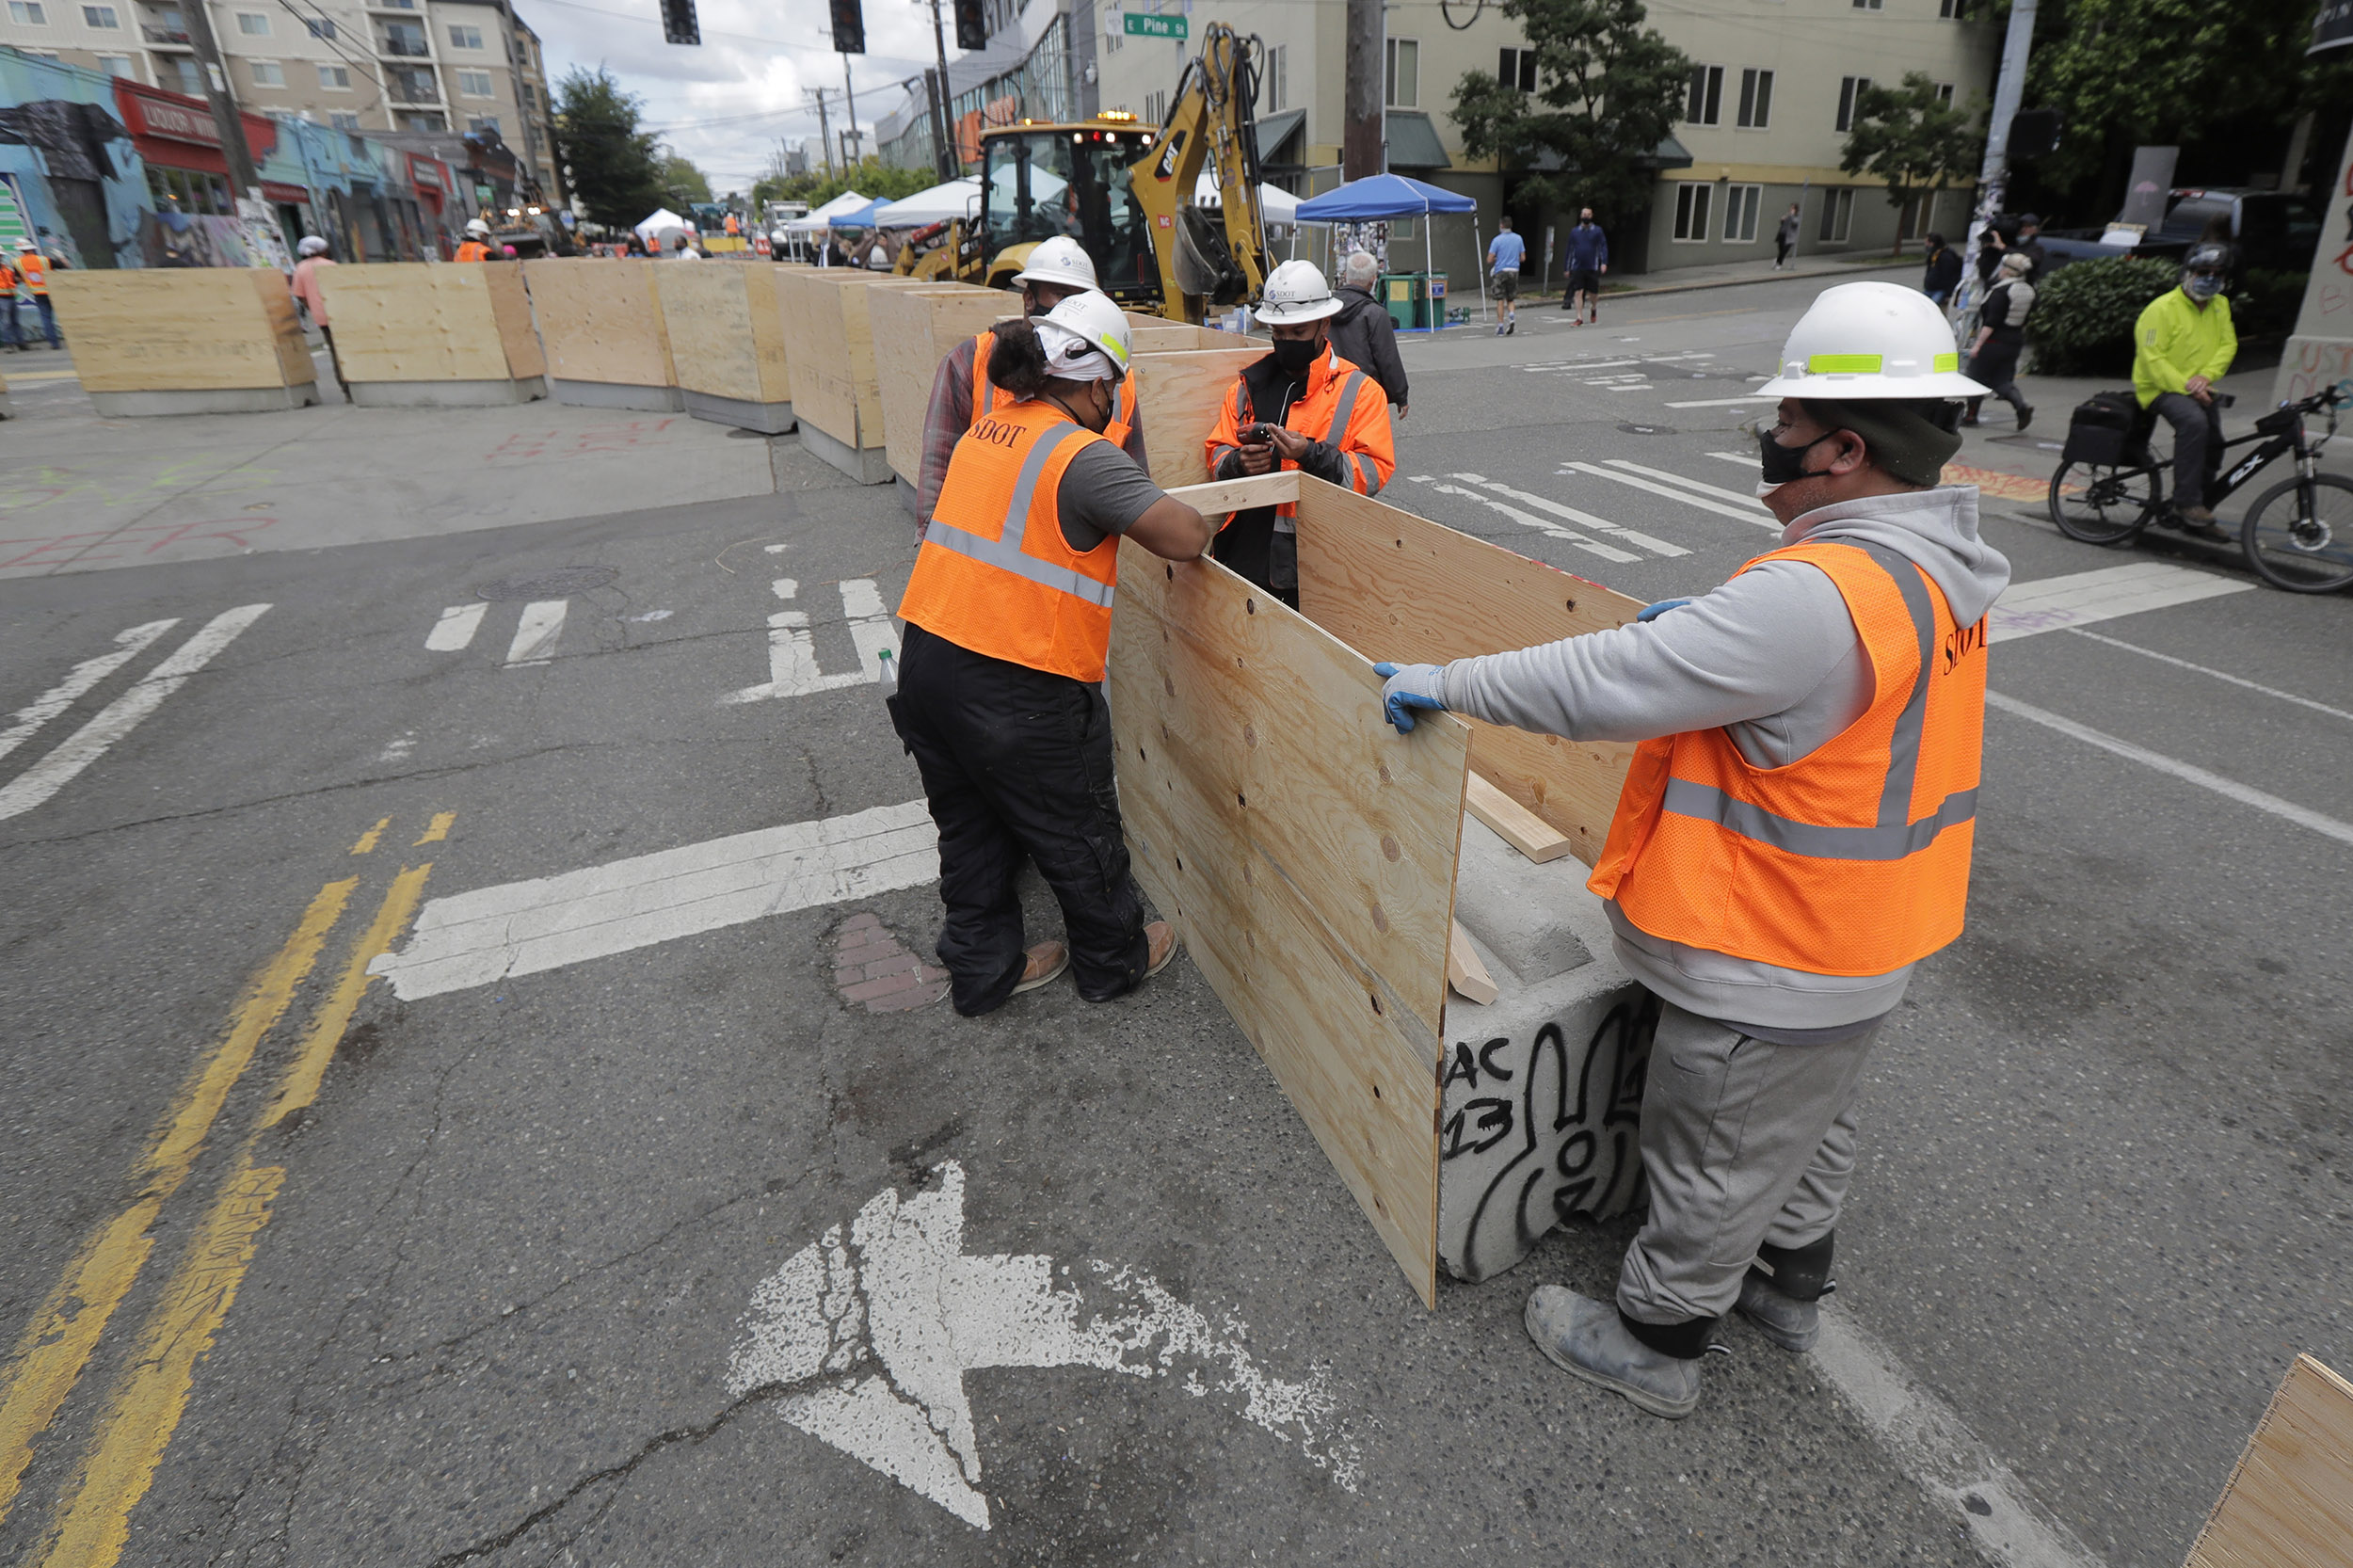 City workers install new cement and wood barricades inside what has been named the Capitol Hill Occupied Protest zone in Seattle, Washington, on Tuesday, June 16.